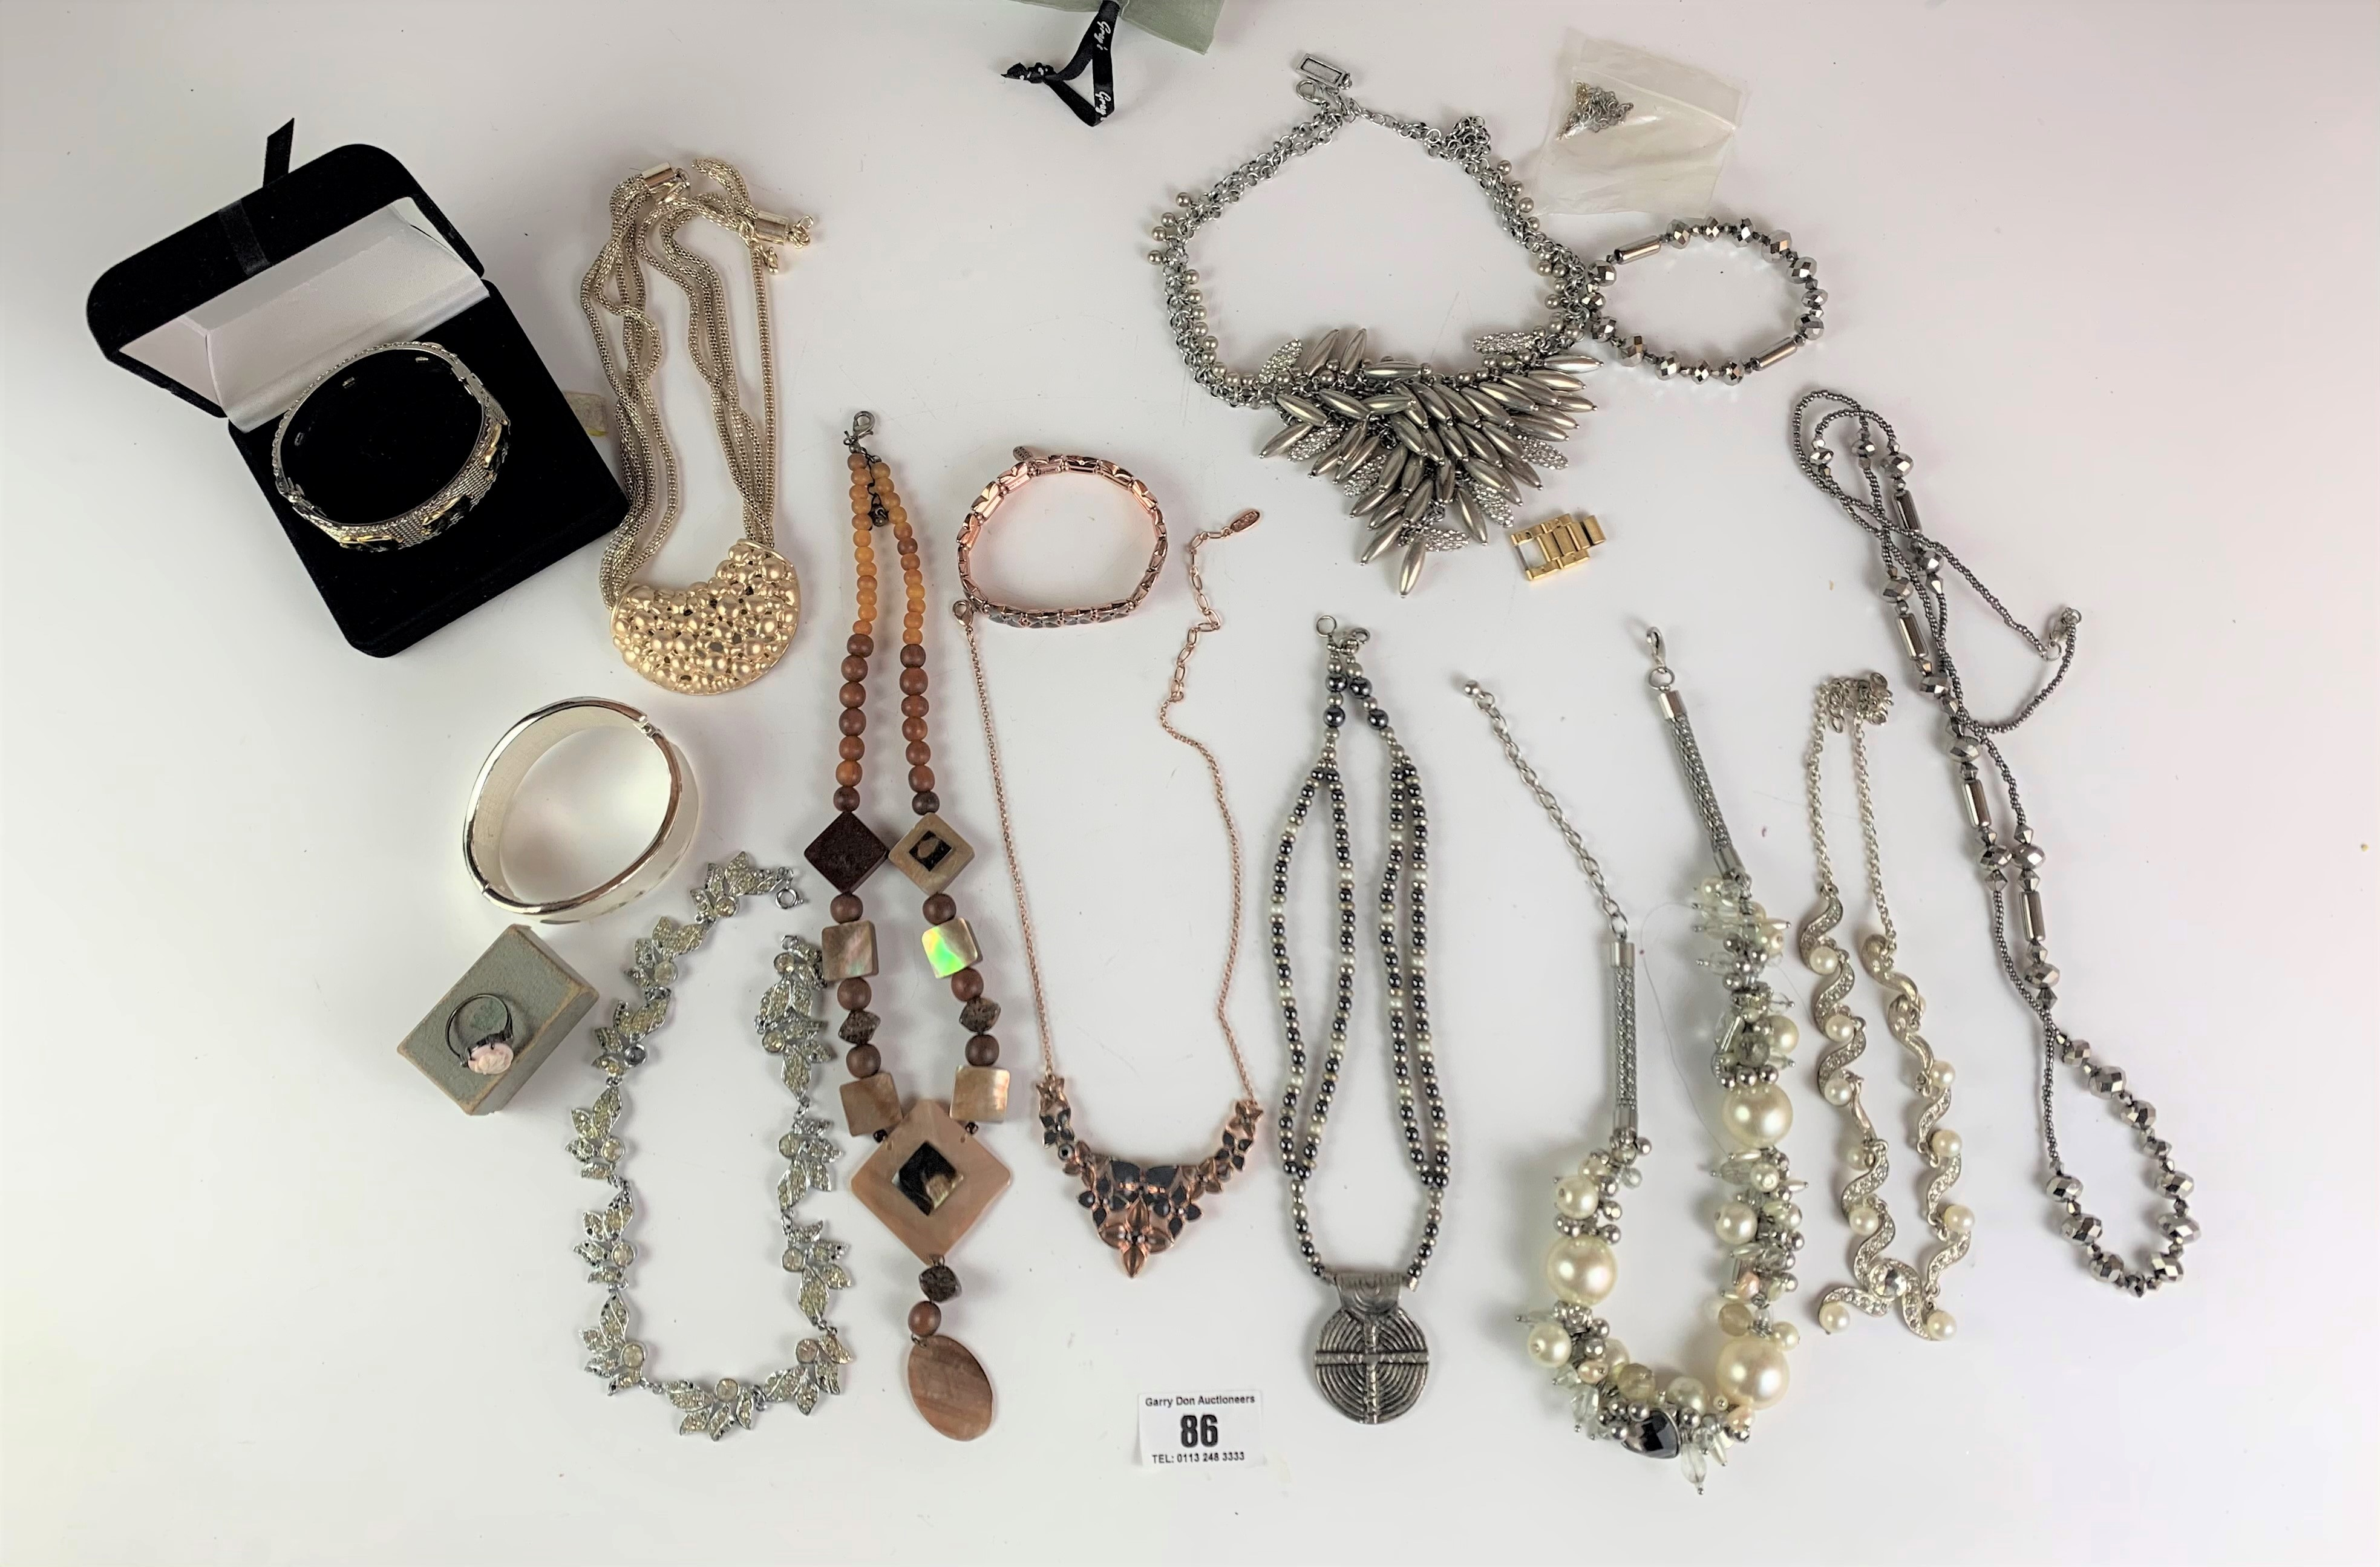 Large bag of assorted dress jewellery including necklaces, bracelets and rings